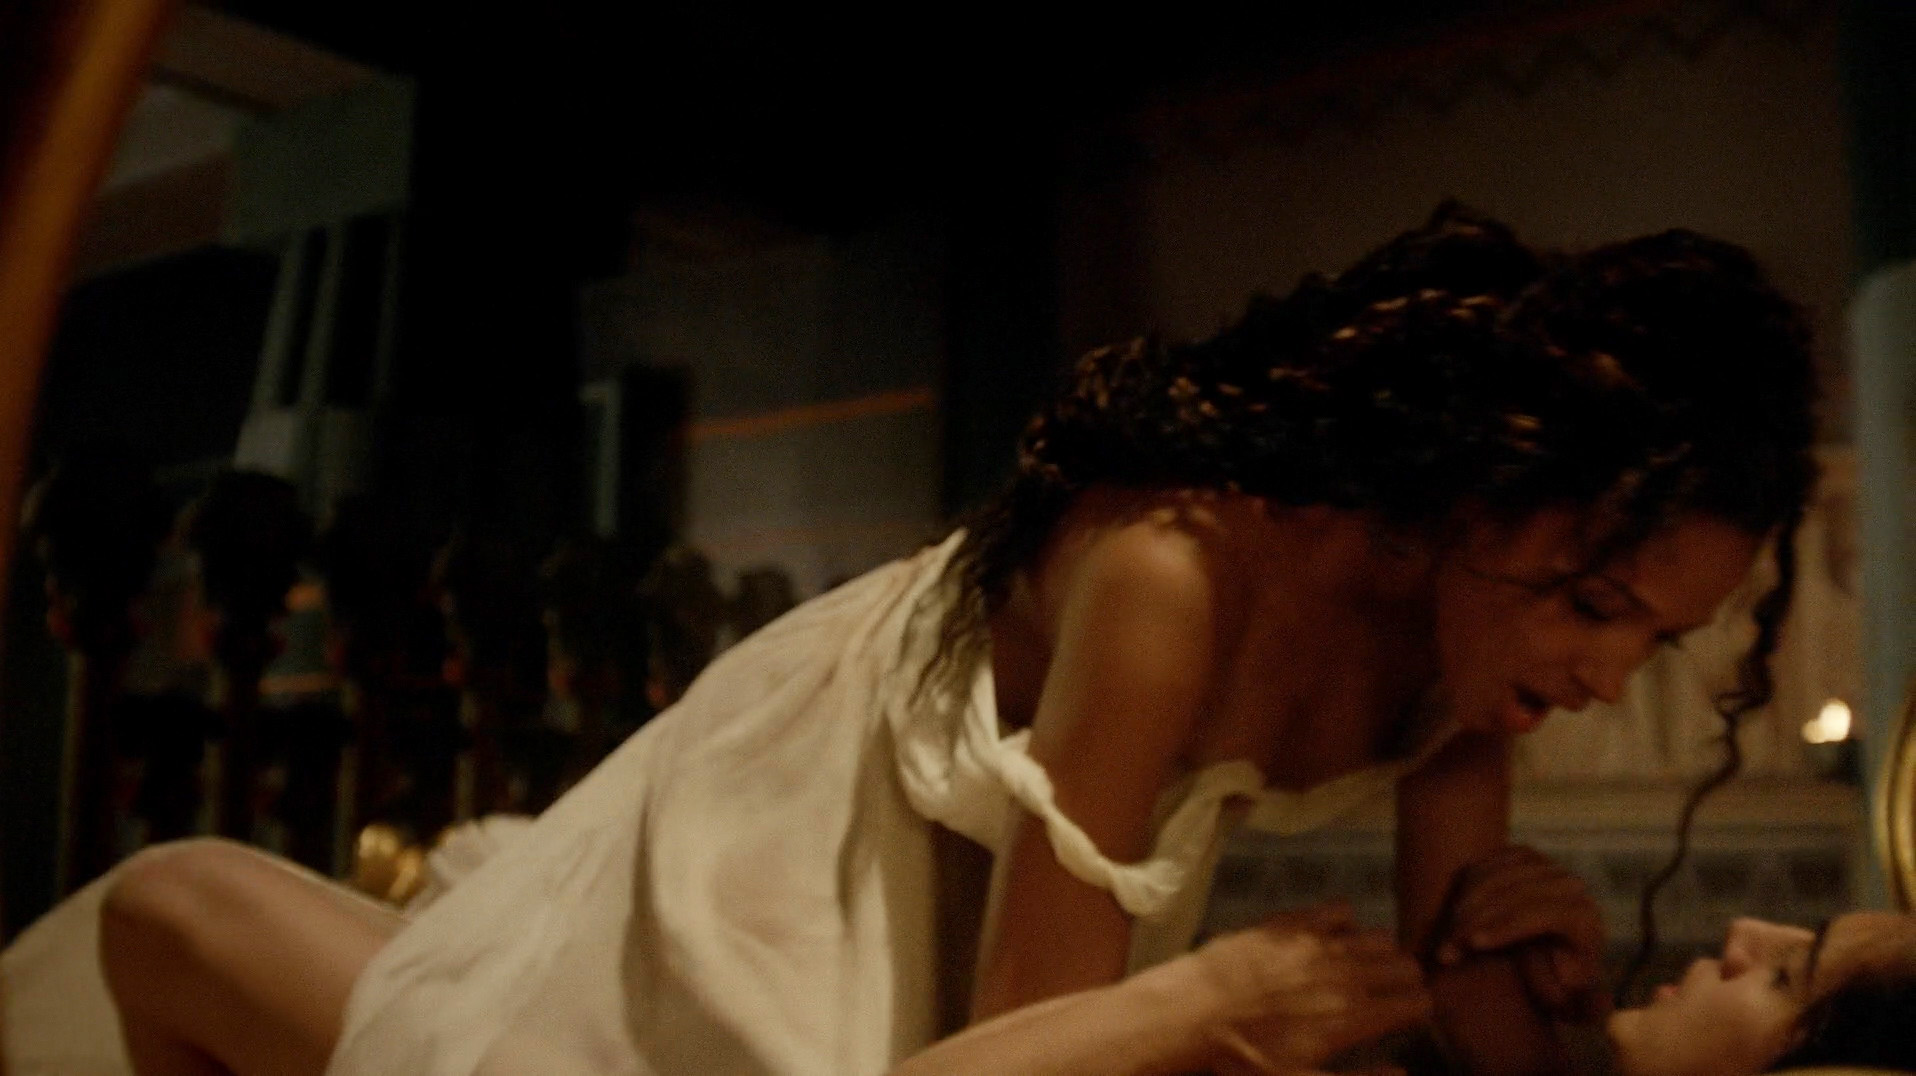 Angela Bassett Ancensored nudecelebvideo - your box of nude celebrities » page 488